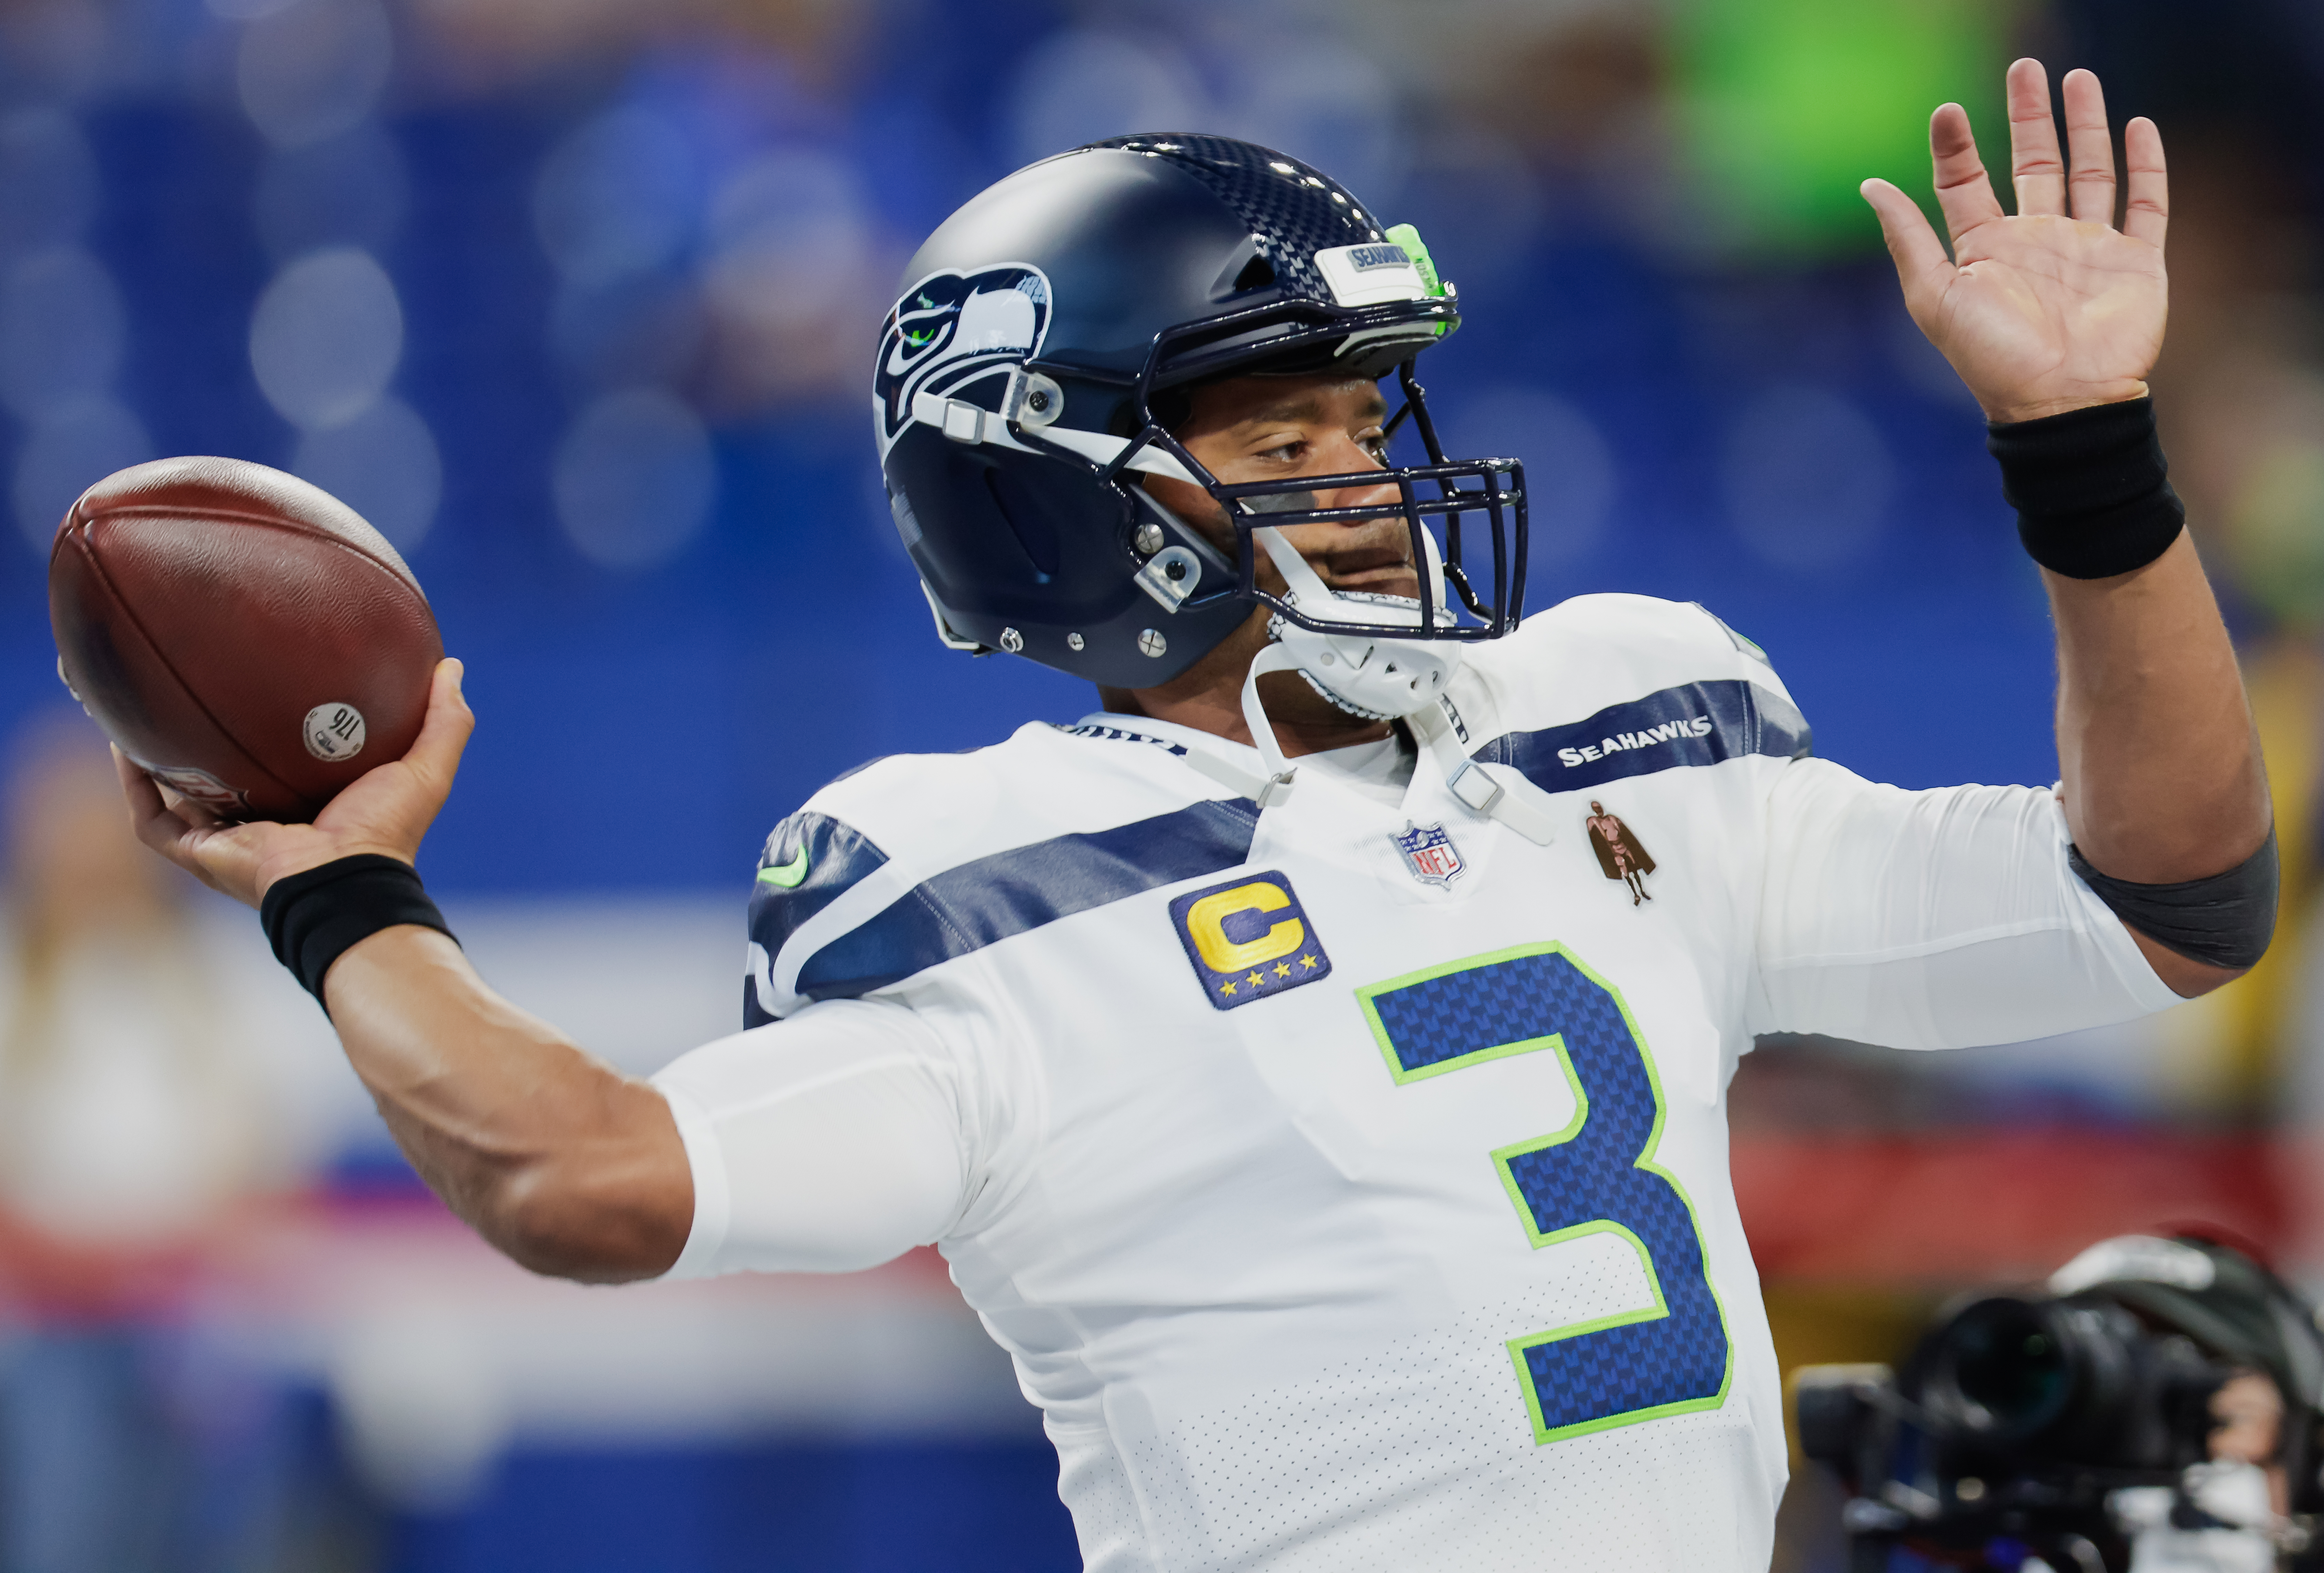 Russell Wilson #3 of the Seattle Seahawks is seen before the game against the Indianapolis Colts at Lucas Oil Stadium on September 12, 2021 in Indianapolis, Indiana.